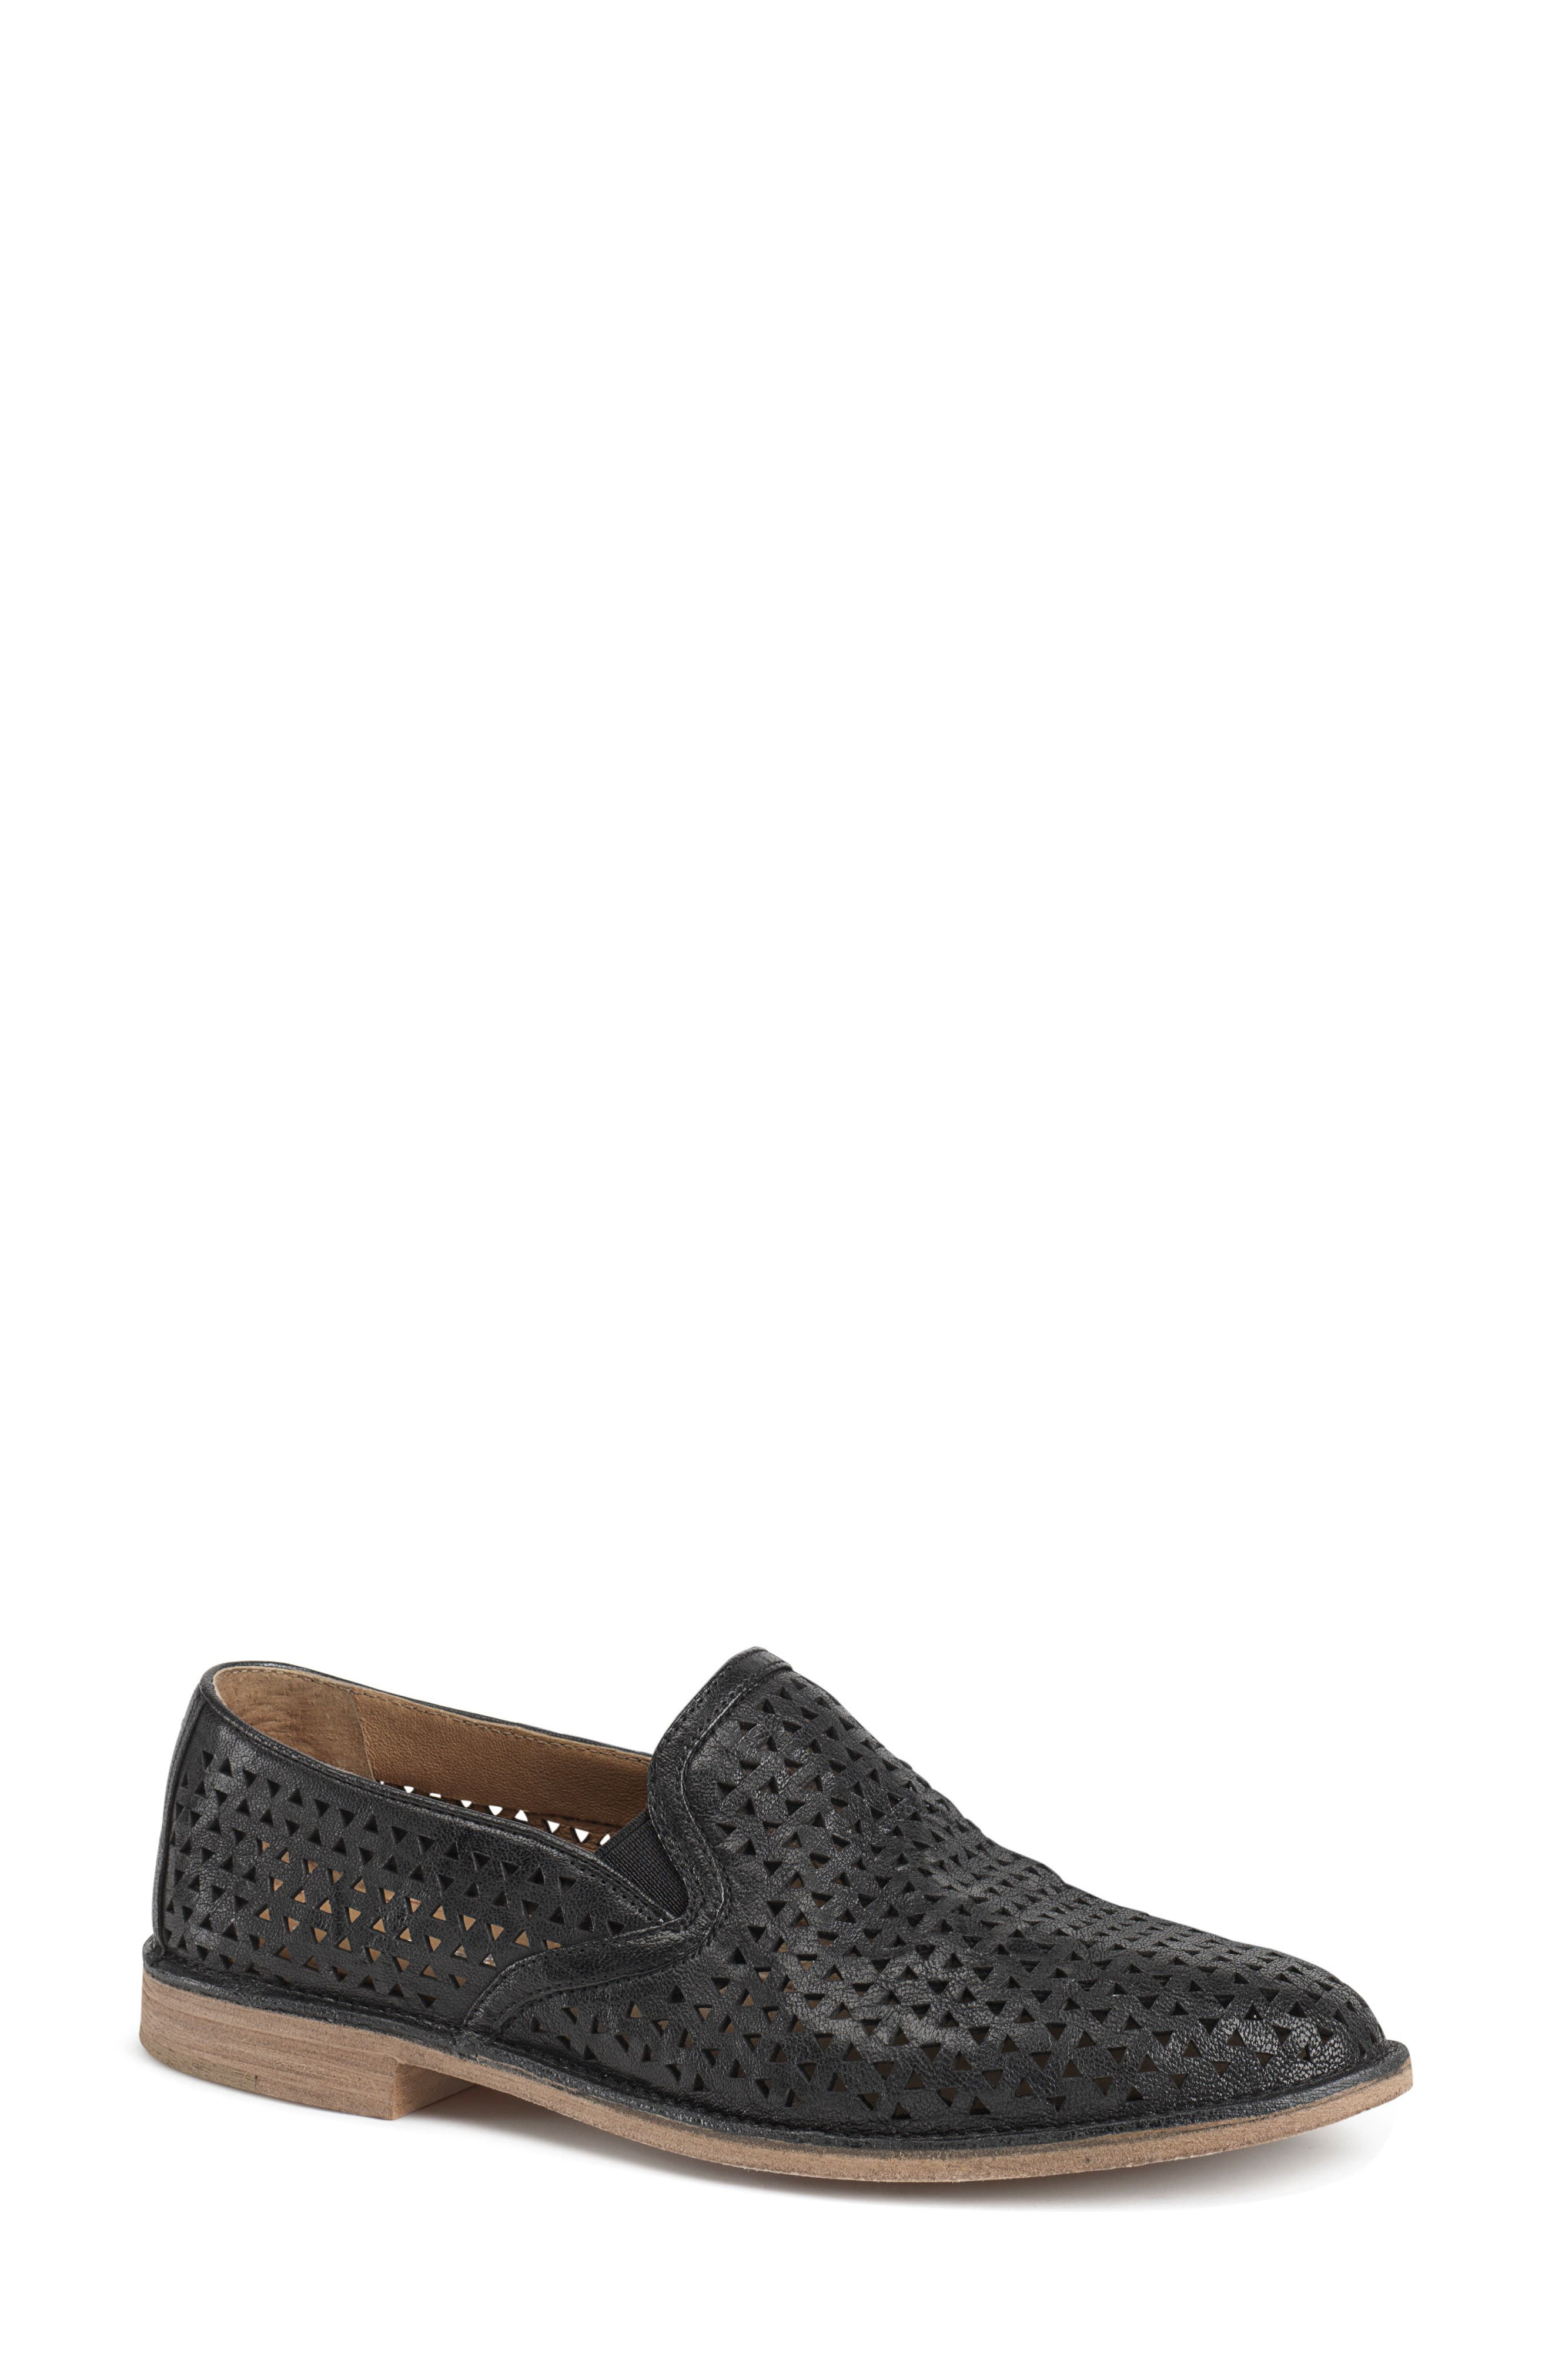 Ali Perforated Loafer,                             Main thumbnail 1, color,                             BLACK LEATHER